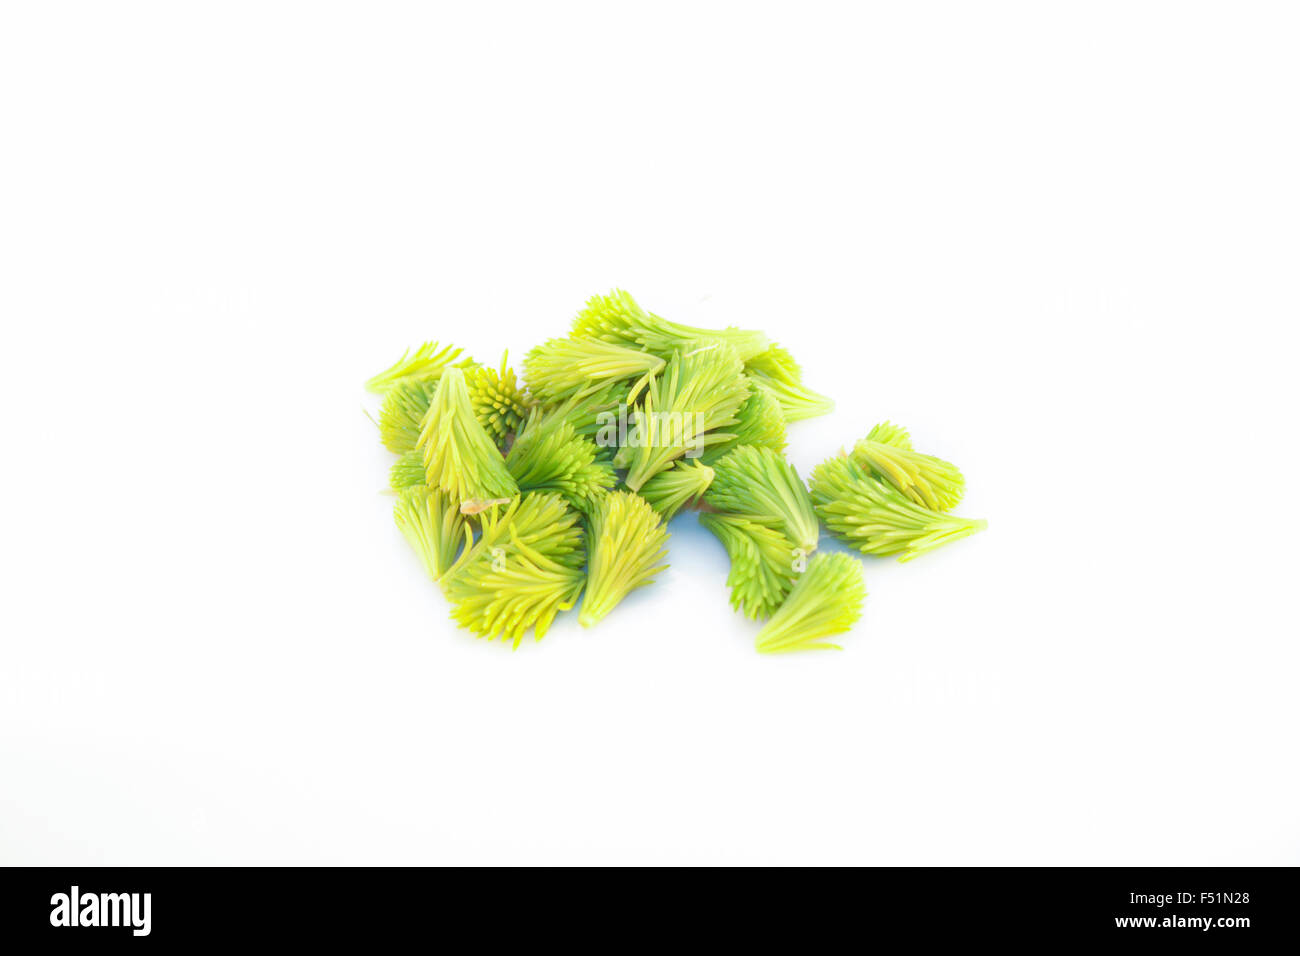 Light green, young spruce sprouts, isolated on white background - Stock Image